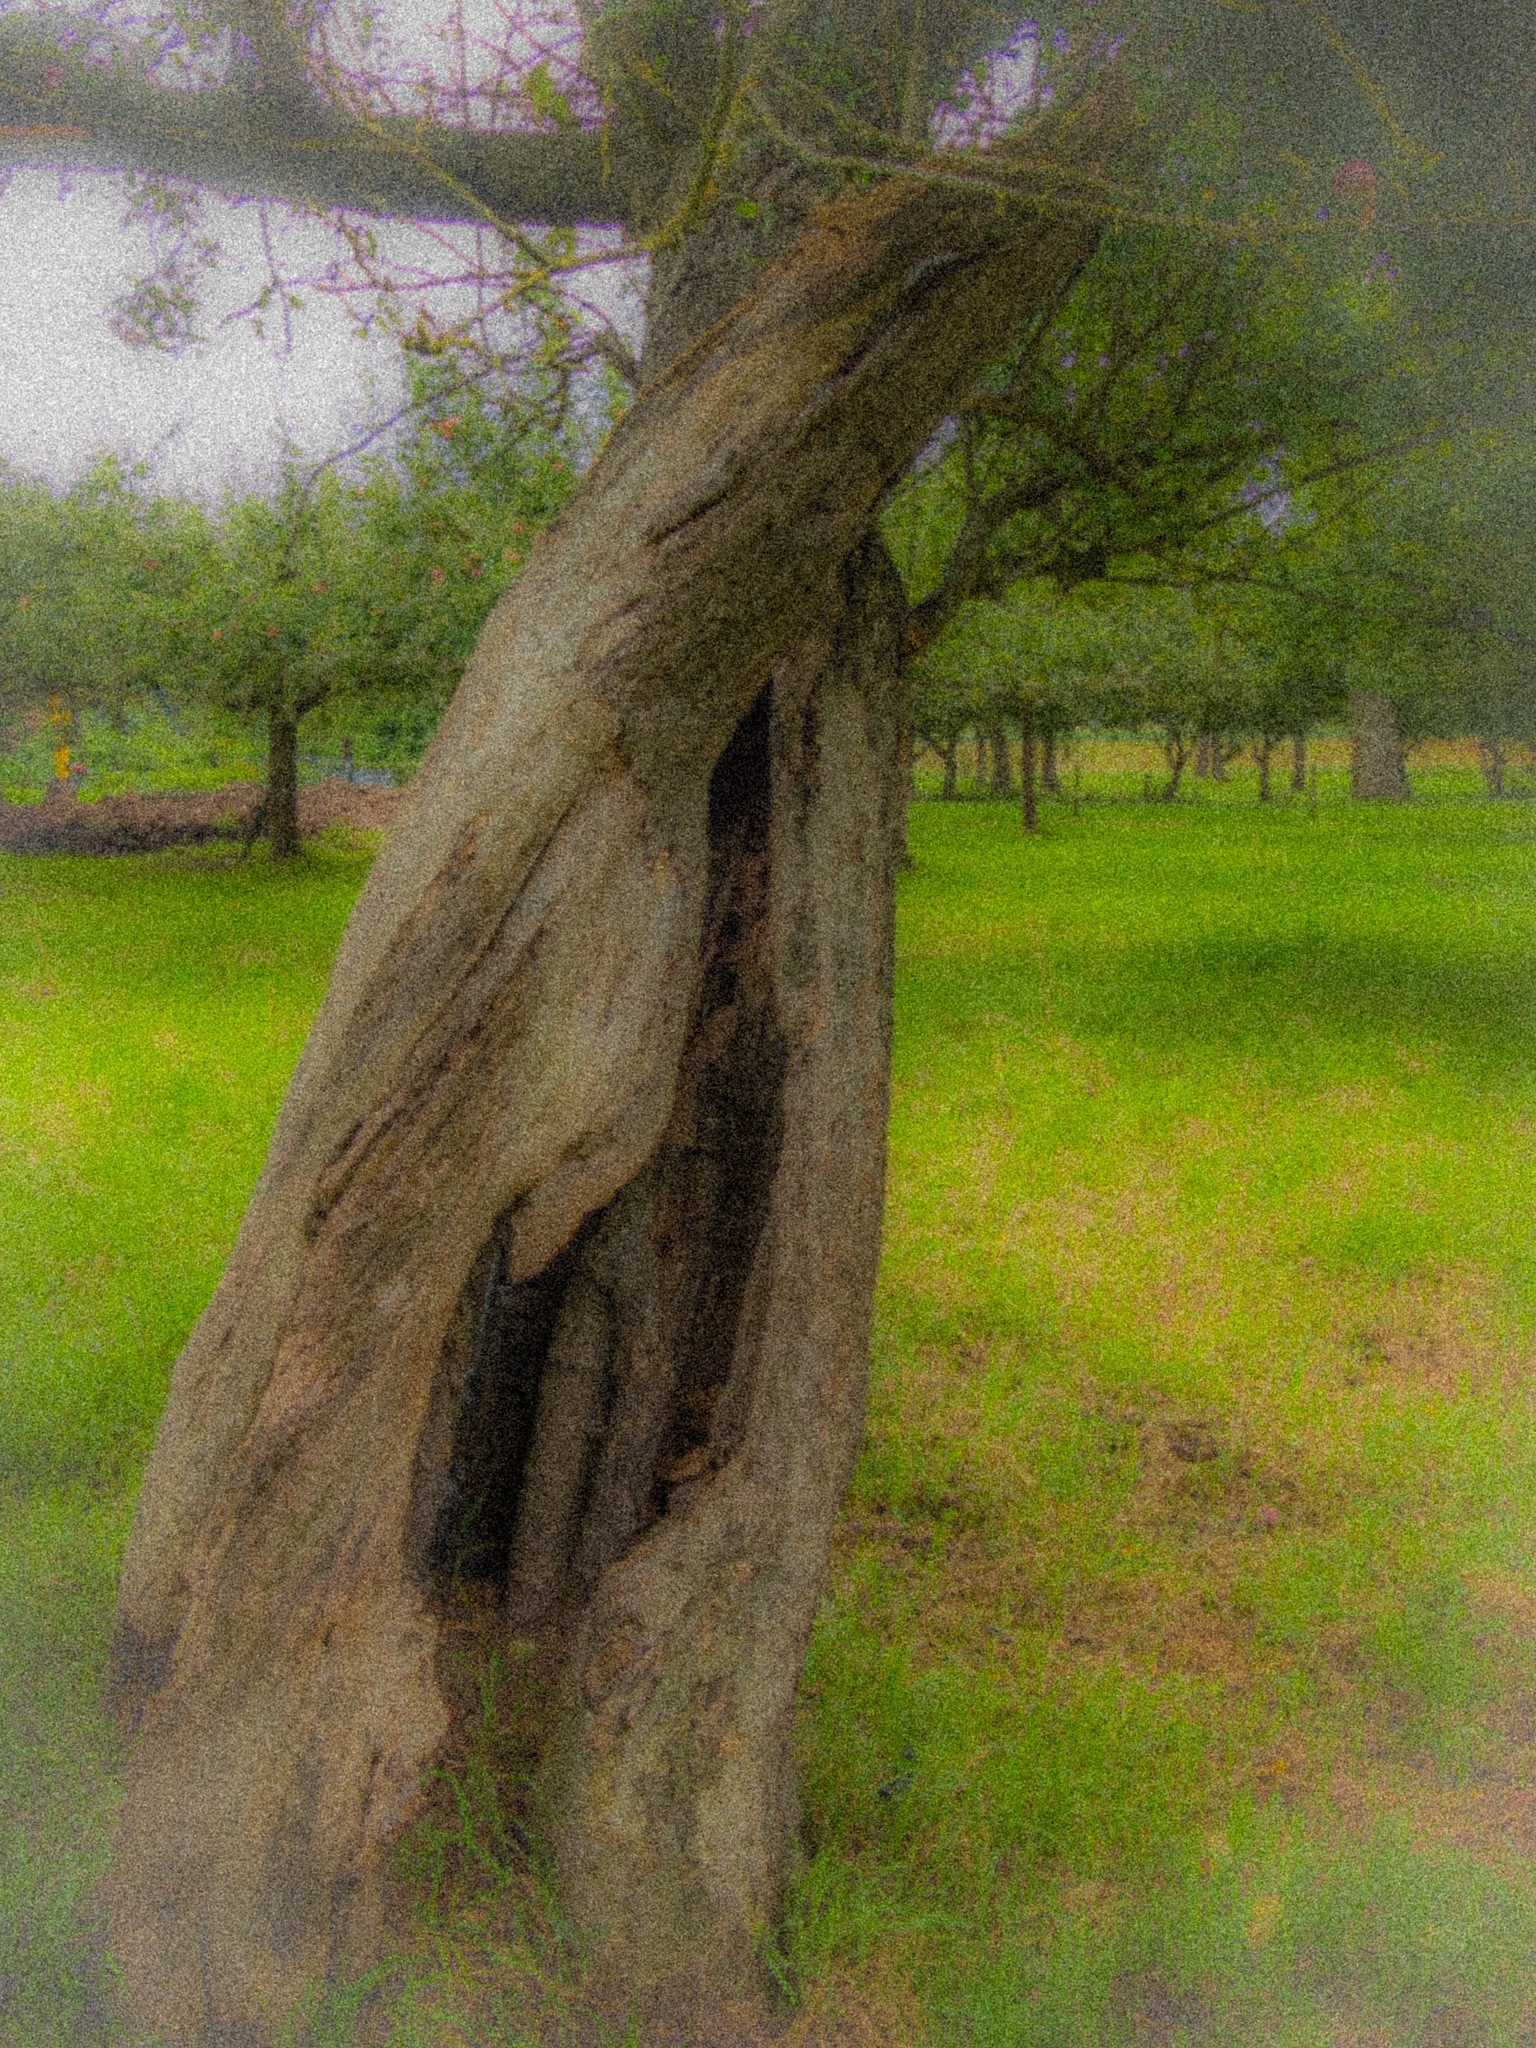 hollow tree by Paul Geutjes